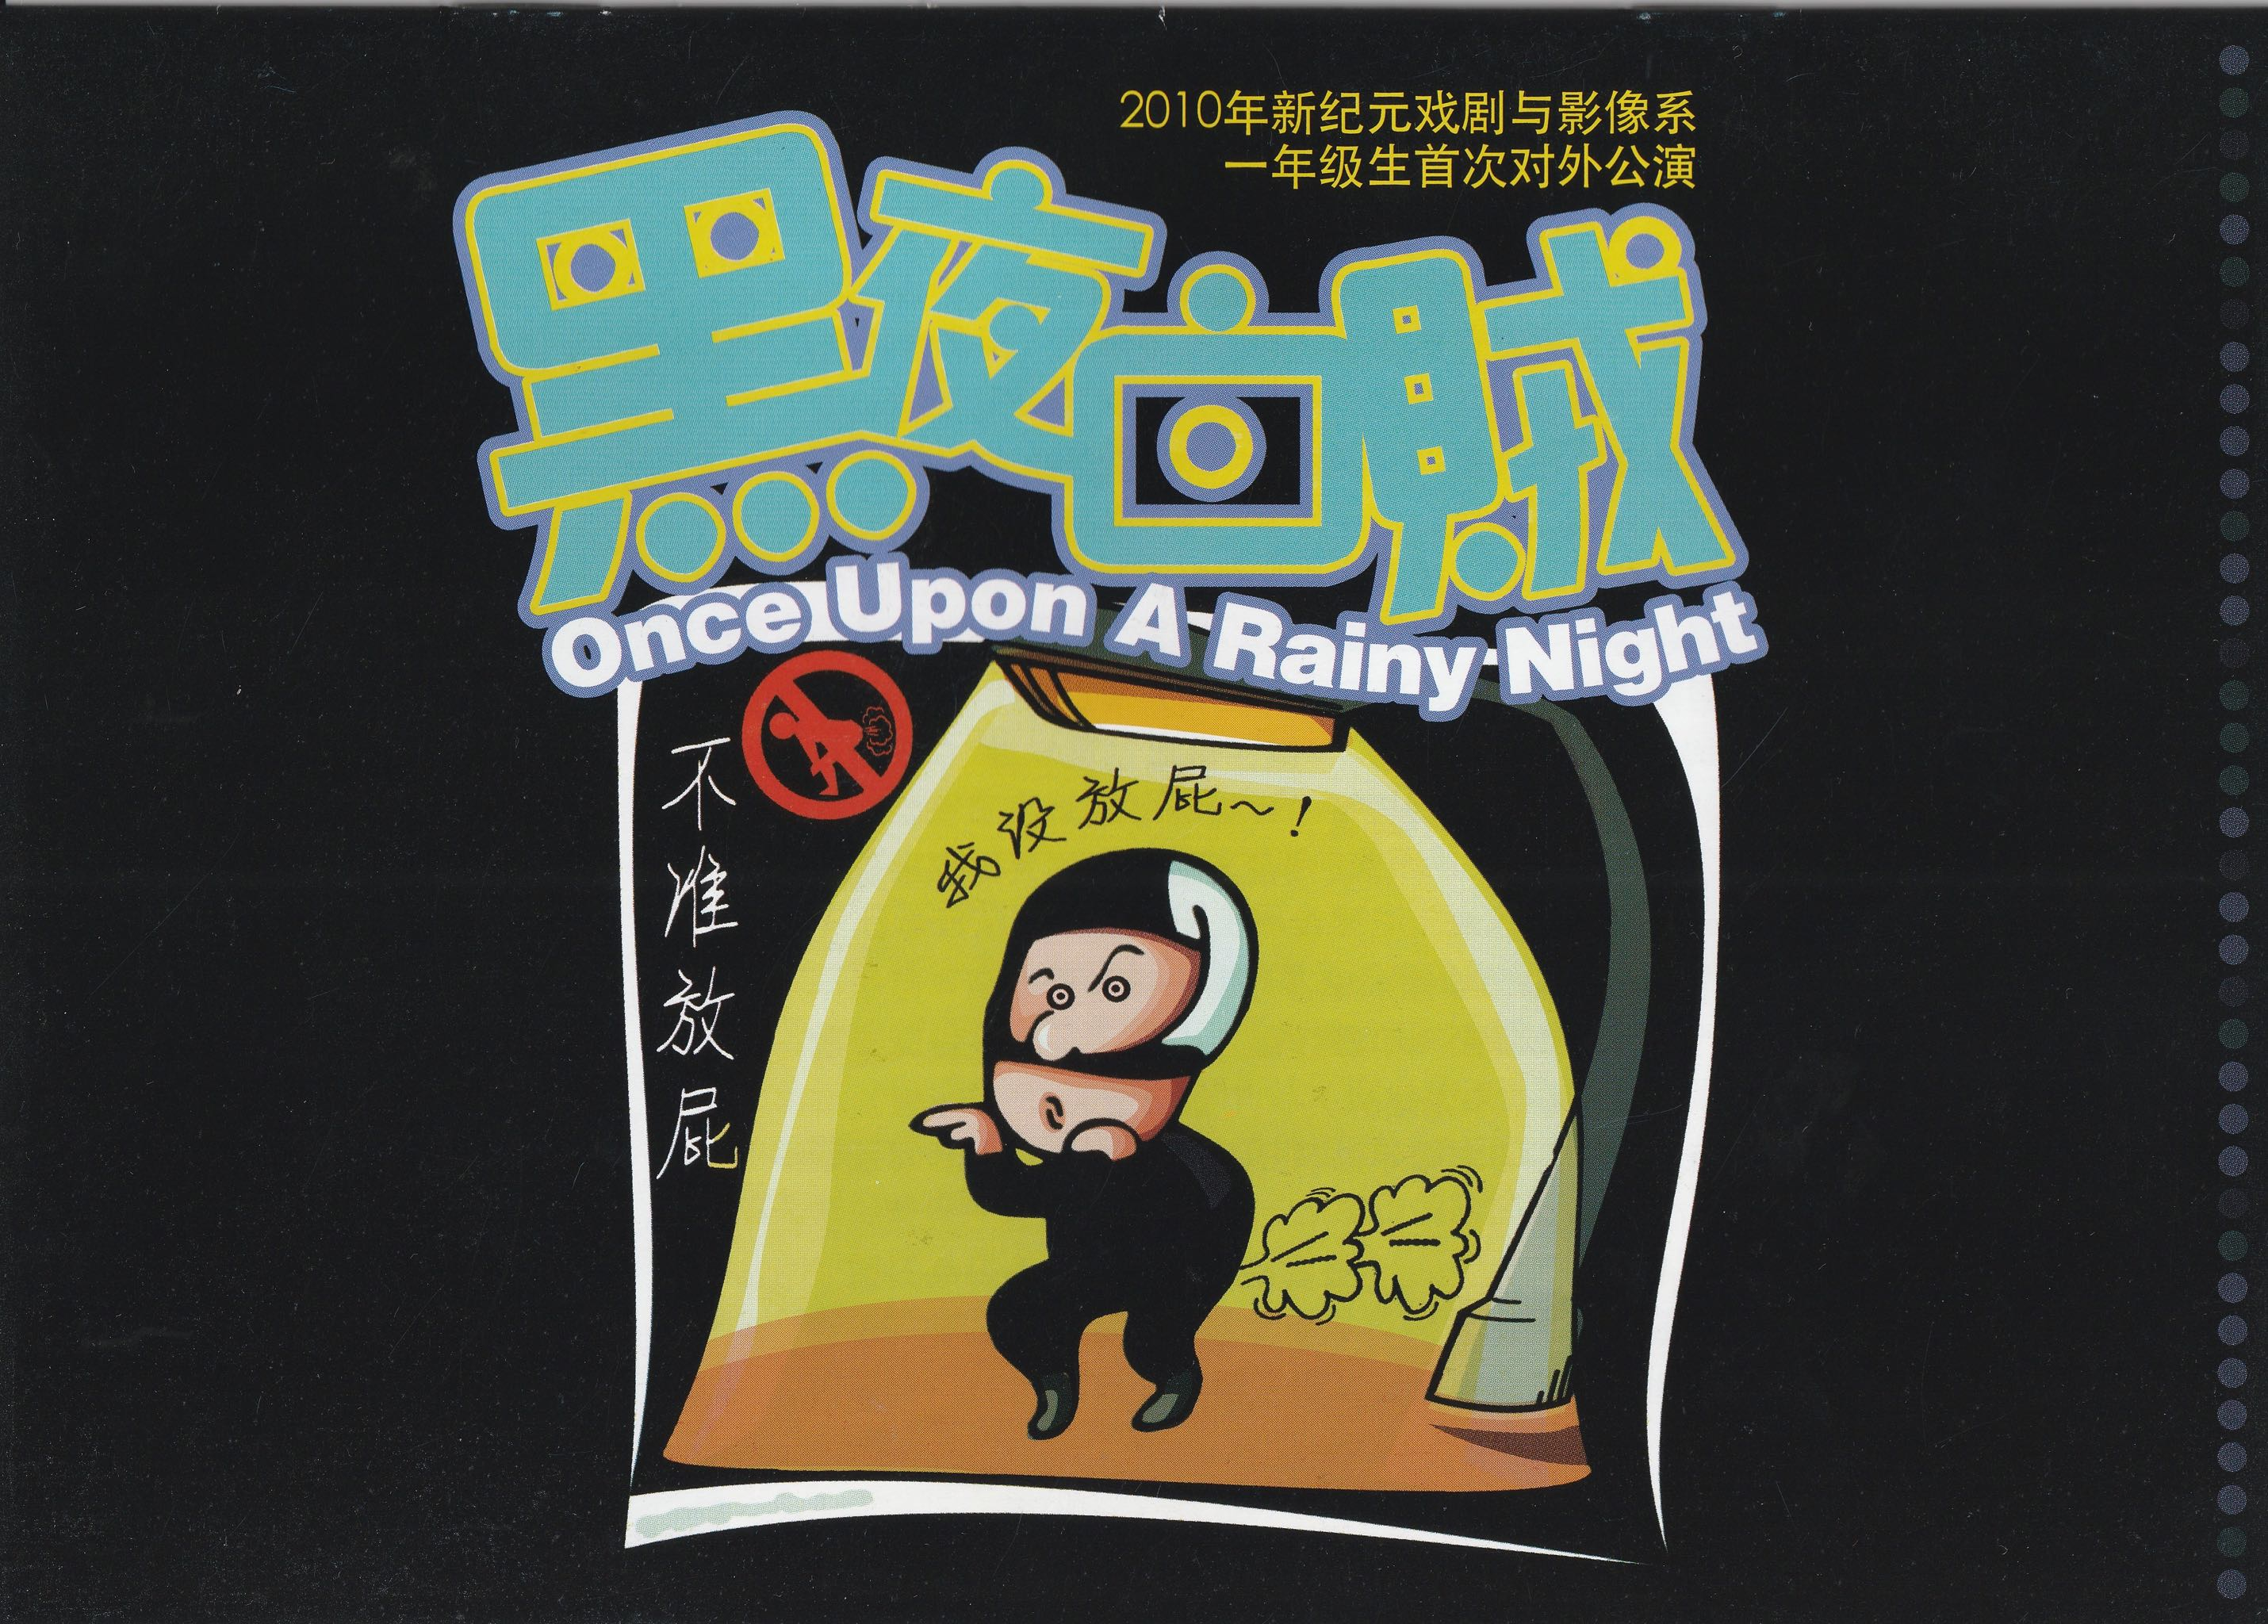 2010 Once Upon A Rainy Night Program Cover